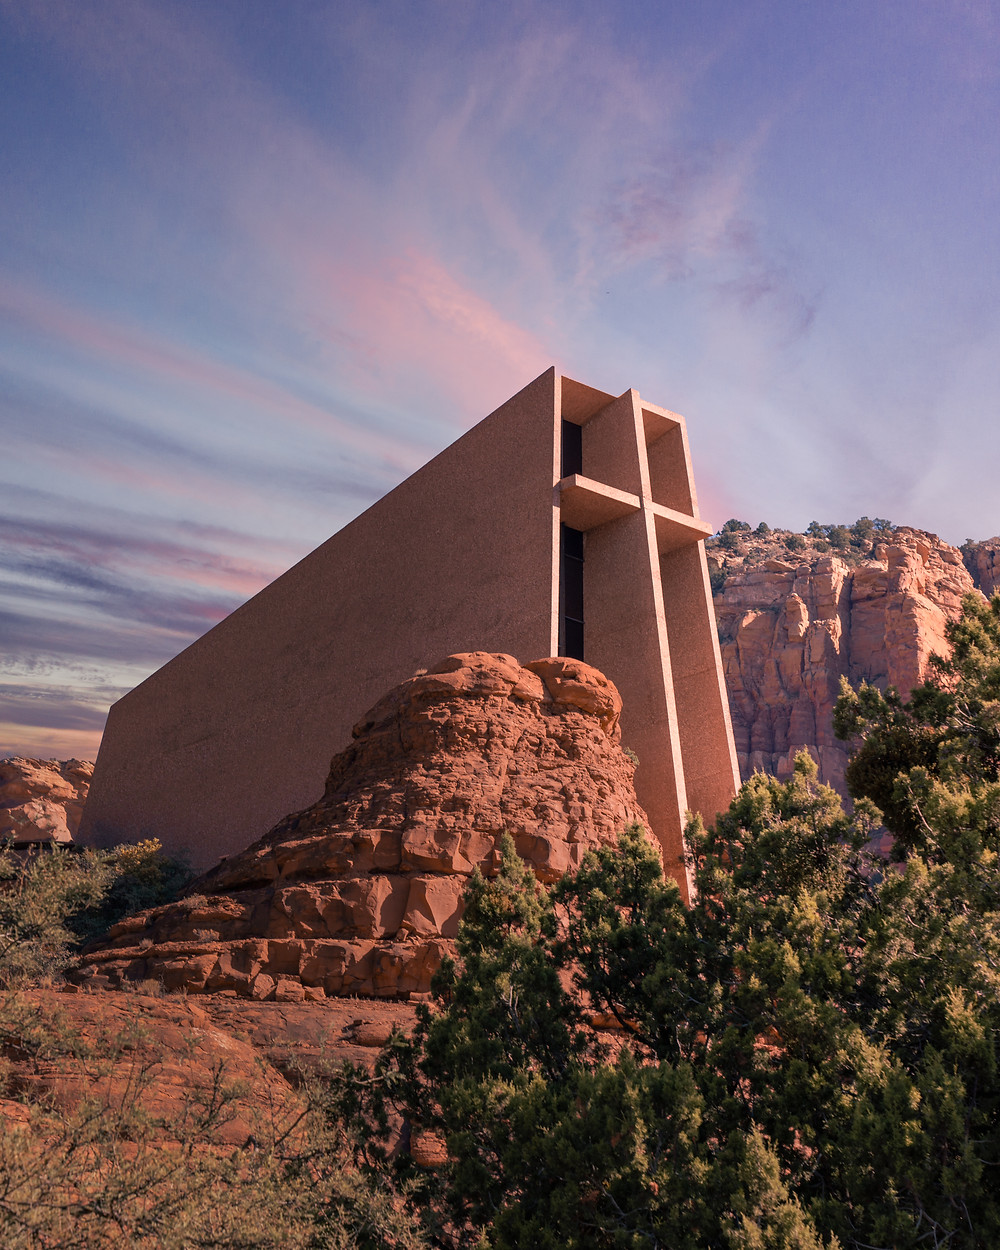 View of the church of the holy cross in the Sedona sunset